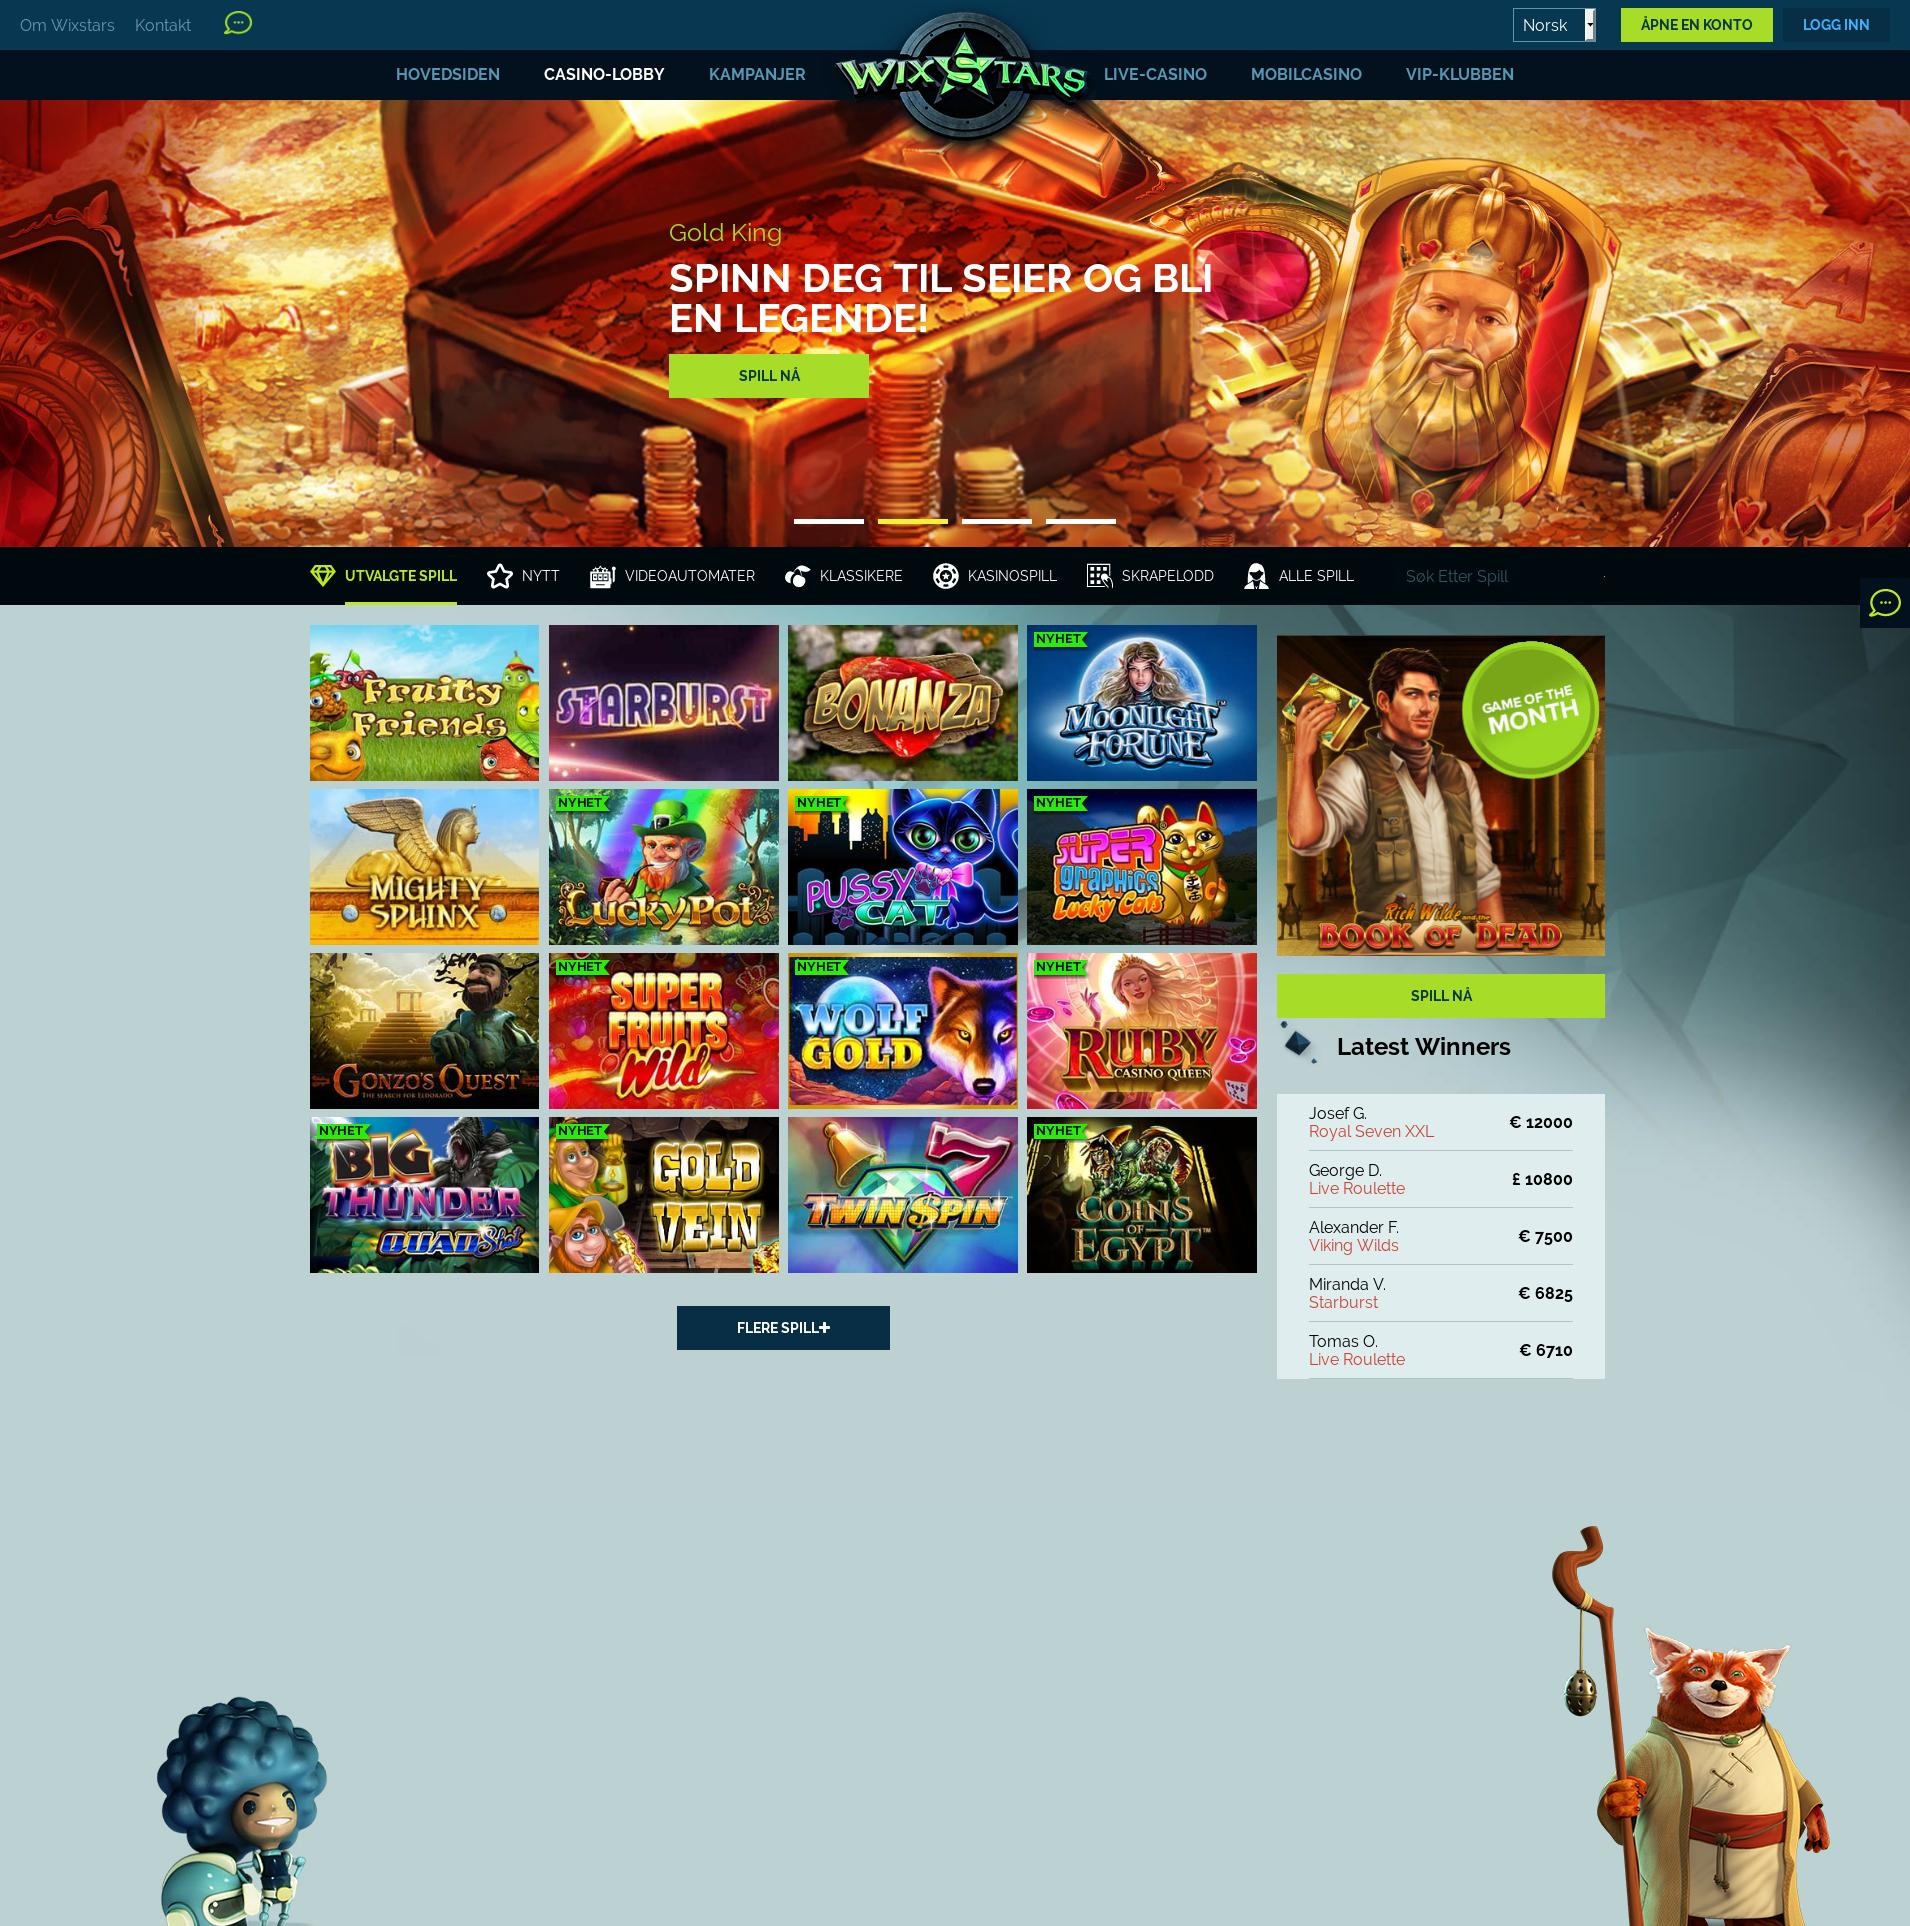 Casino screen Lobby 2019-06-24 for Norway